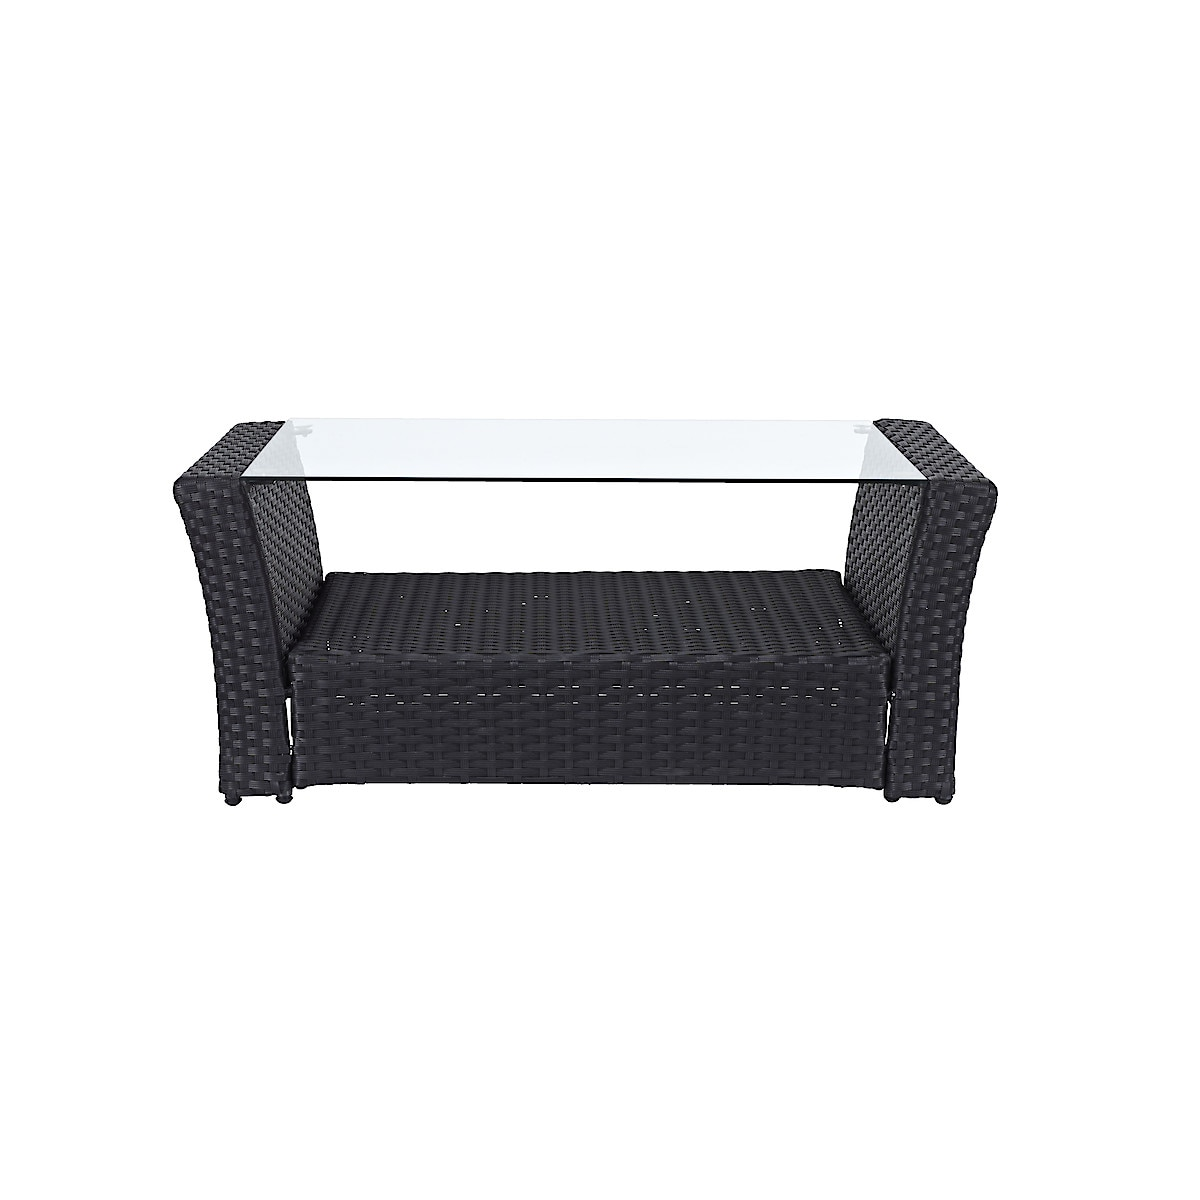 Synthetic Rattan Furniture Set